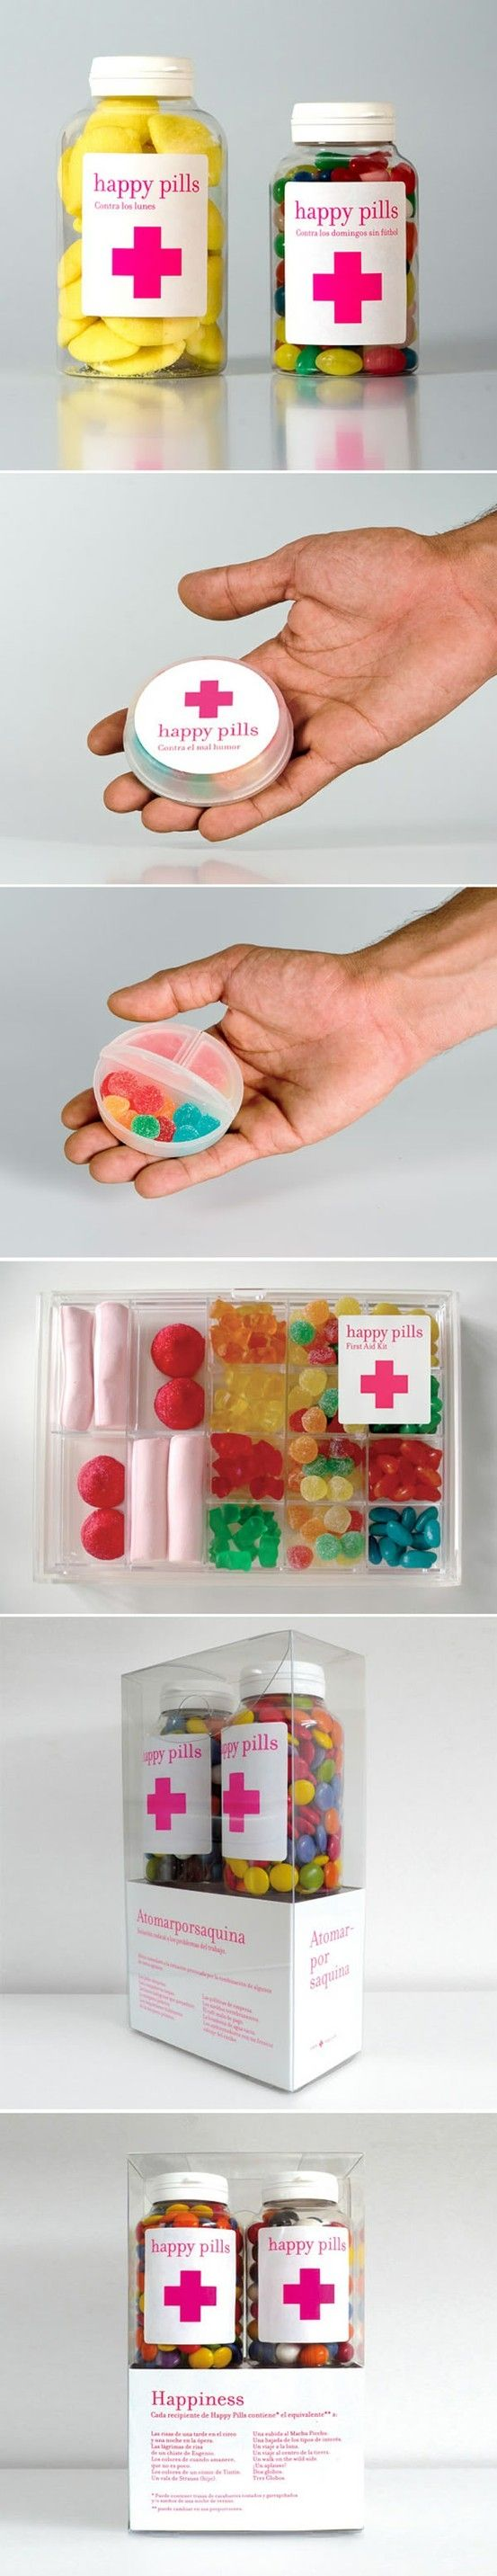 #Candy #Packaging #Design